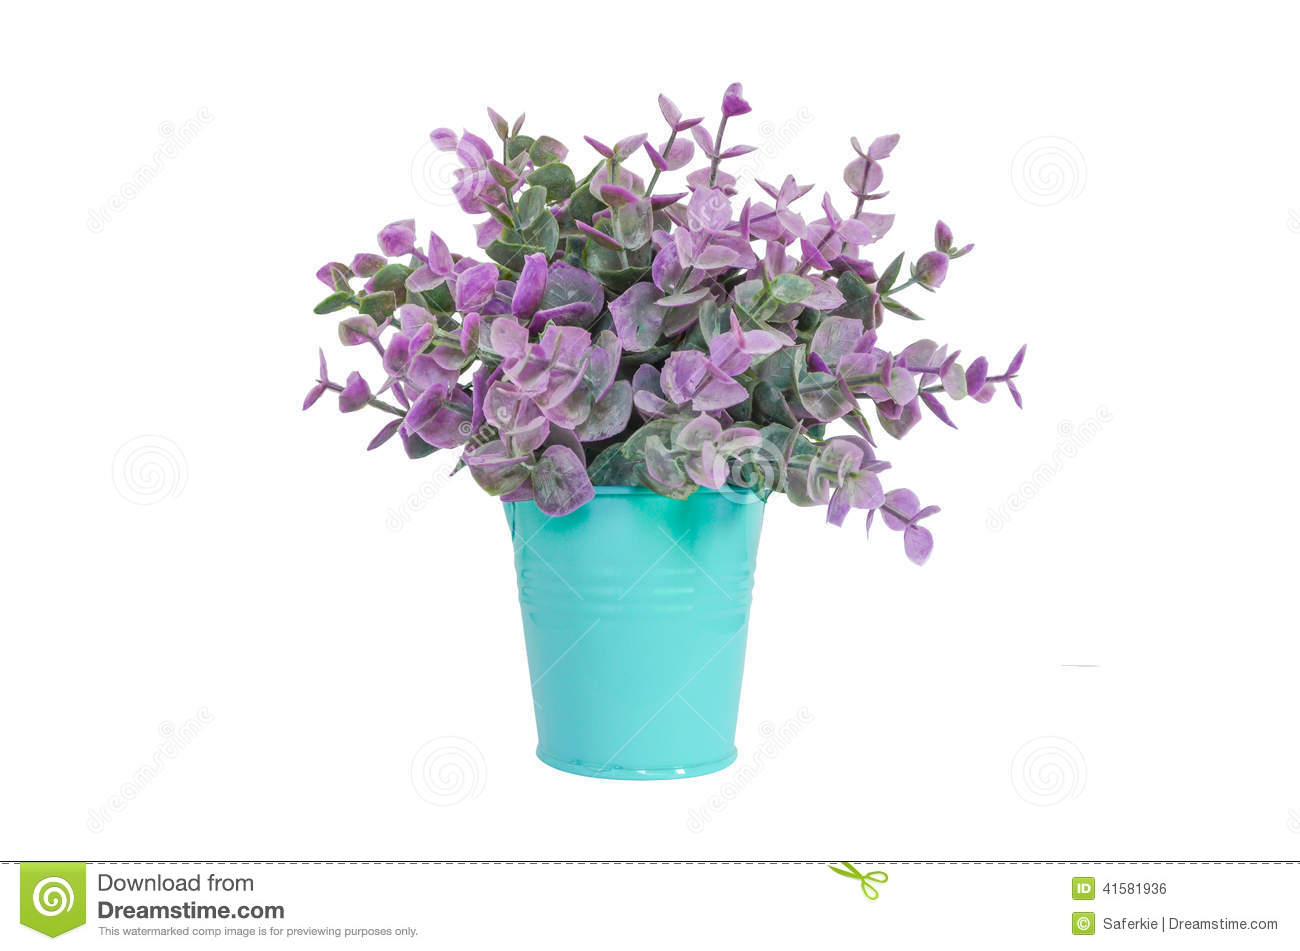 Purple plant in blue metal flower pot stock photo image of decor purple plant in blue metal flower pot izmirmasajfo Choice Image